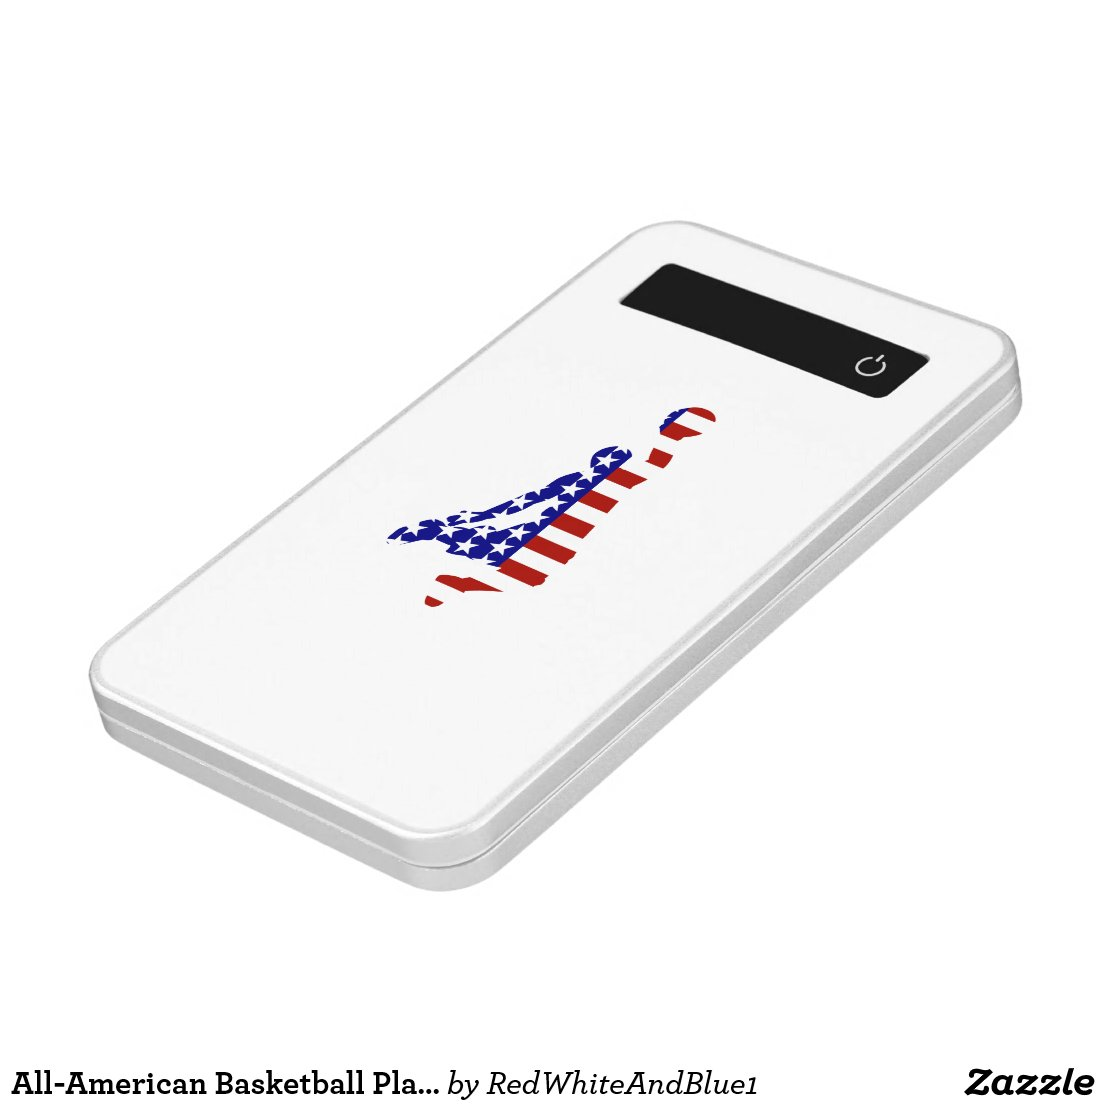 All-American Basketball Player Power Bank